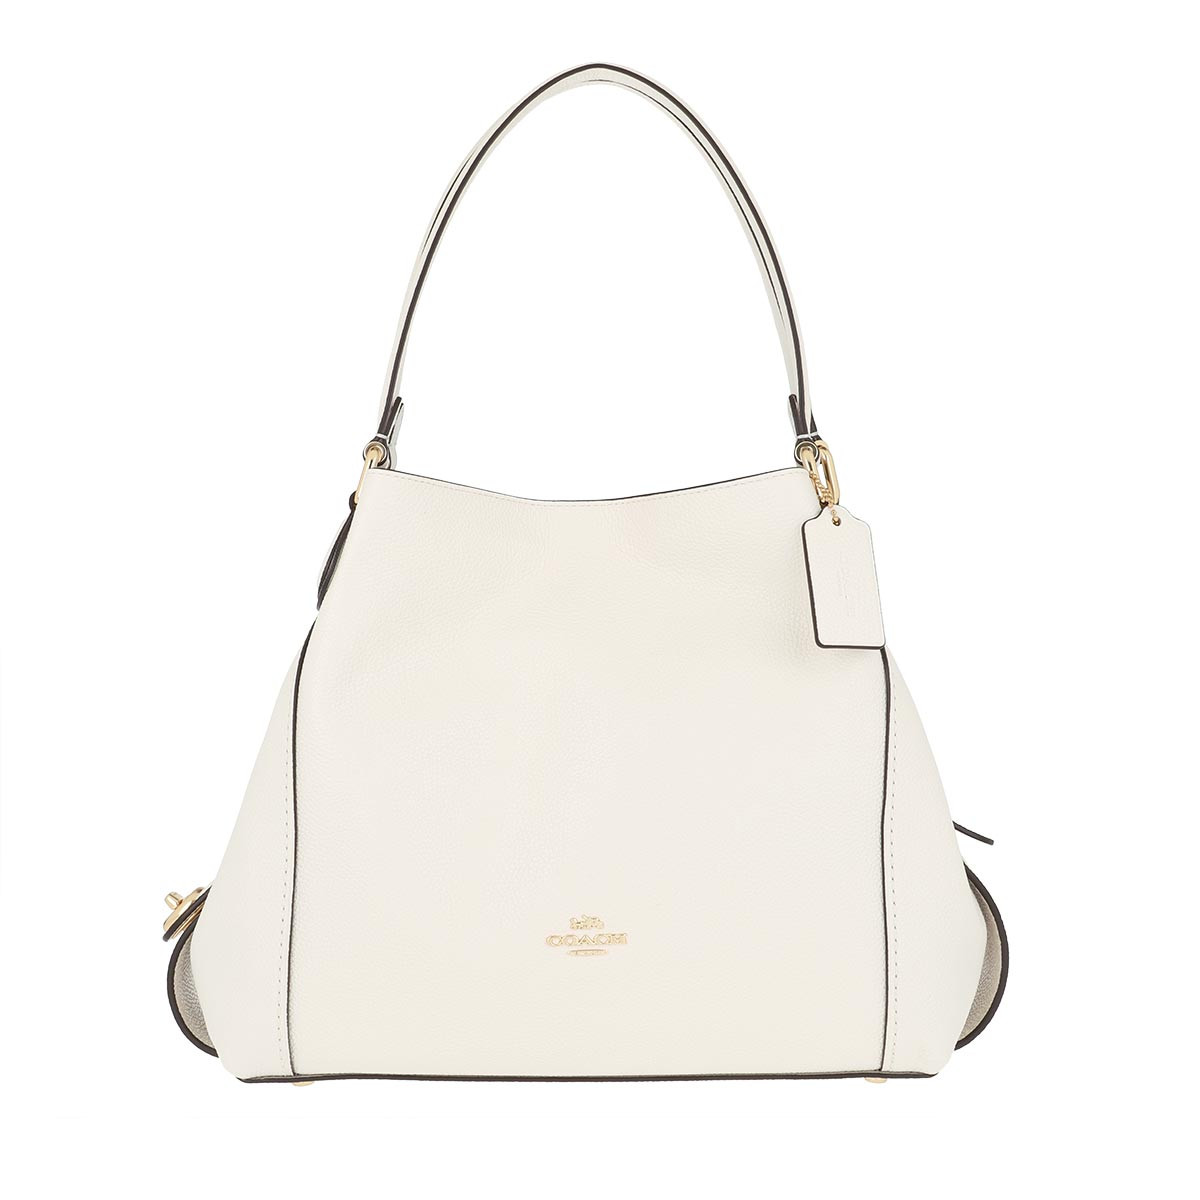 Coach Tote - Pebble Edie Shoulder Bag Chalk - in weiß - für Damen